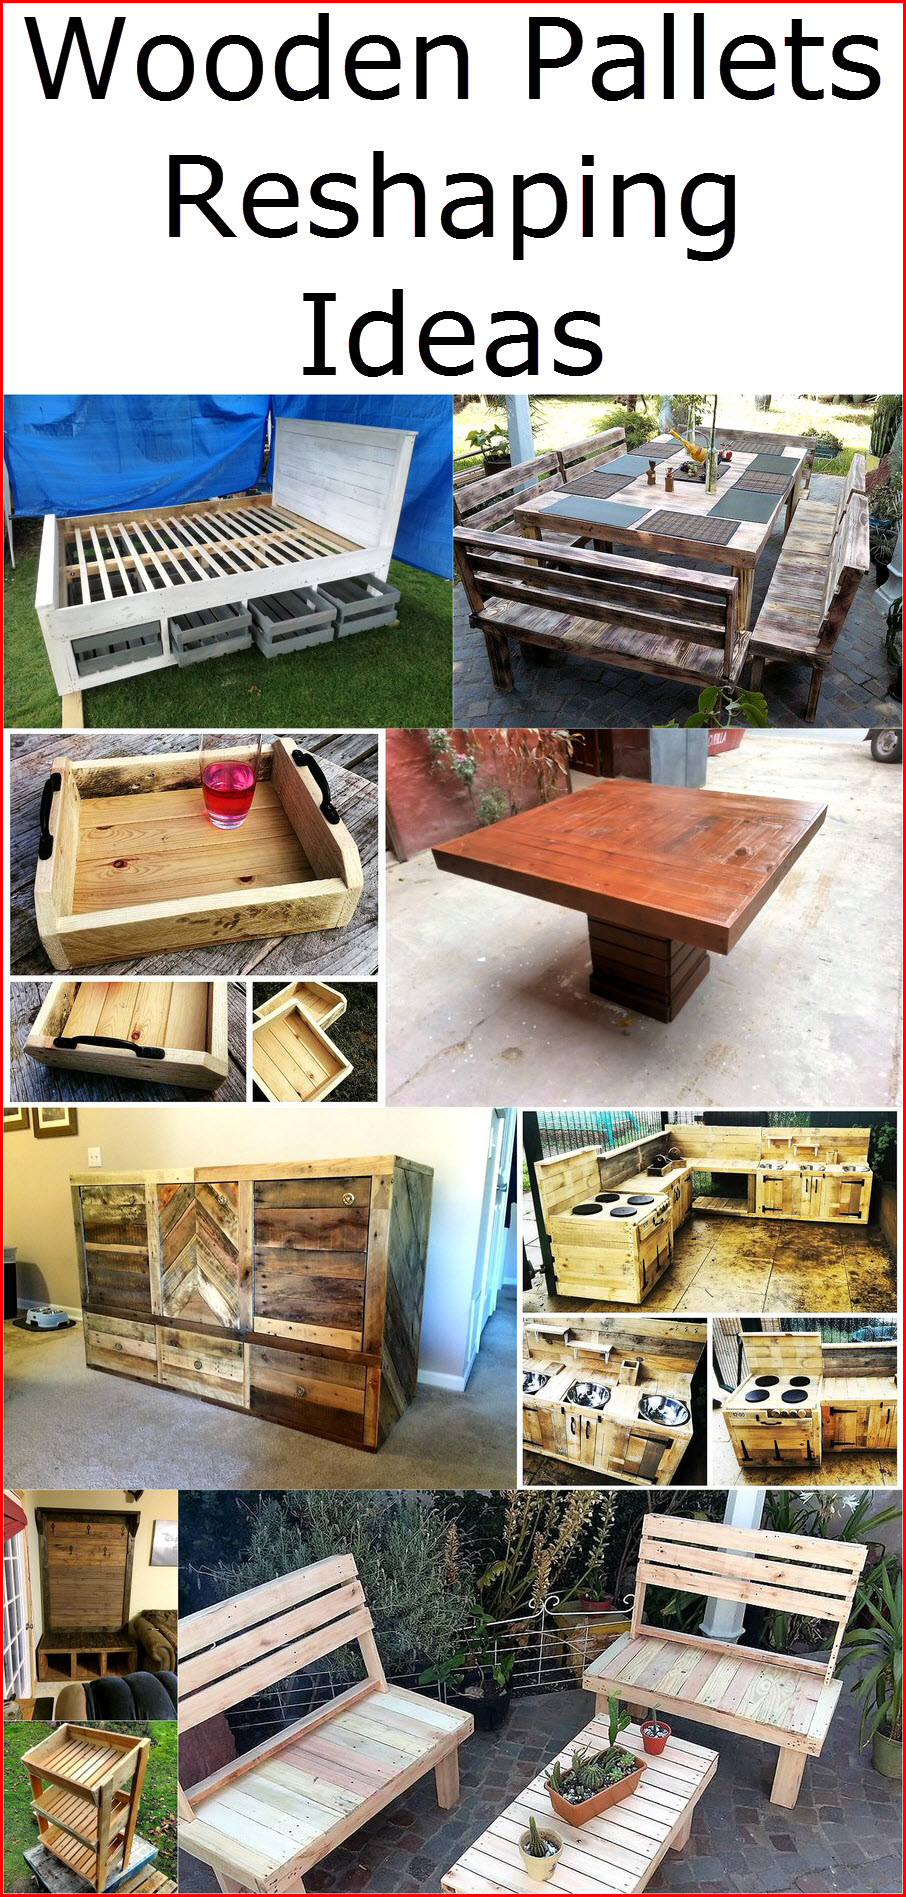 wooden-pallets-reshaping-ideas